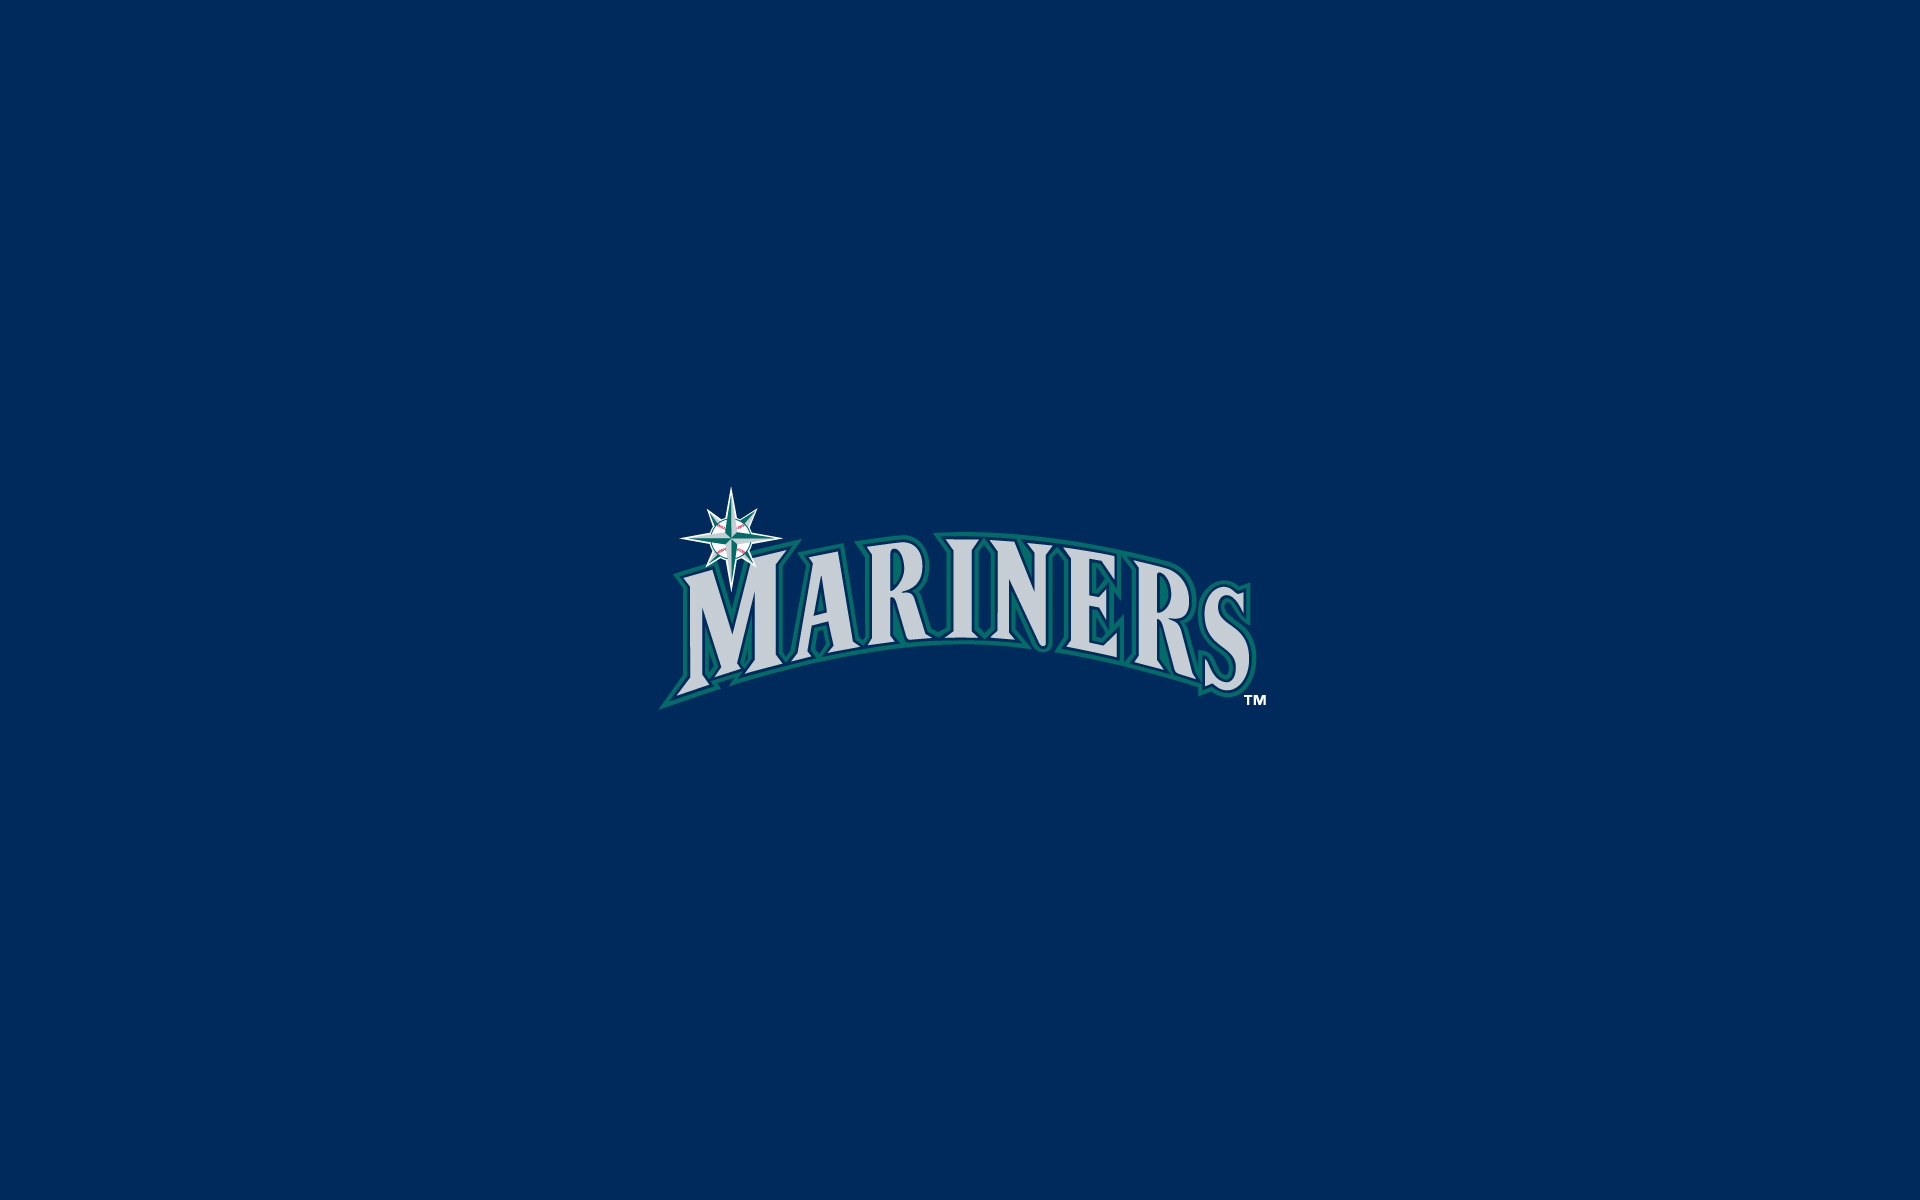 Seattle Mariners wallpaper 1920x1200 69572 1920x1200